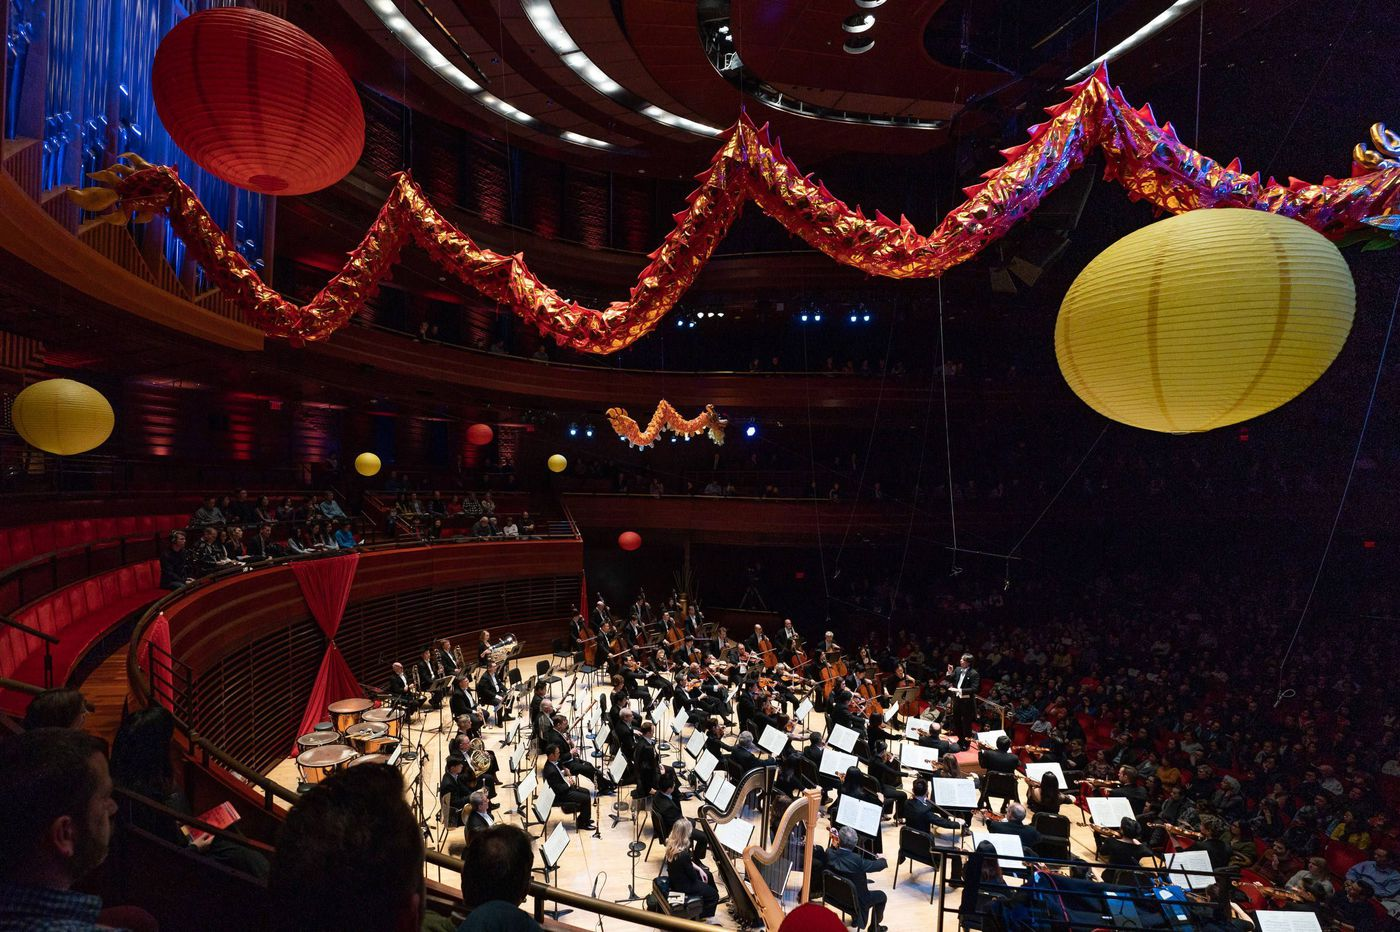 Philadelphia Orchestra will go to China and hosts Shanghai Philharmonic in pre-tour concert here